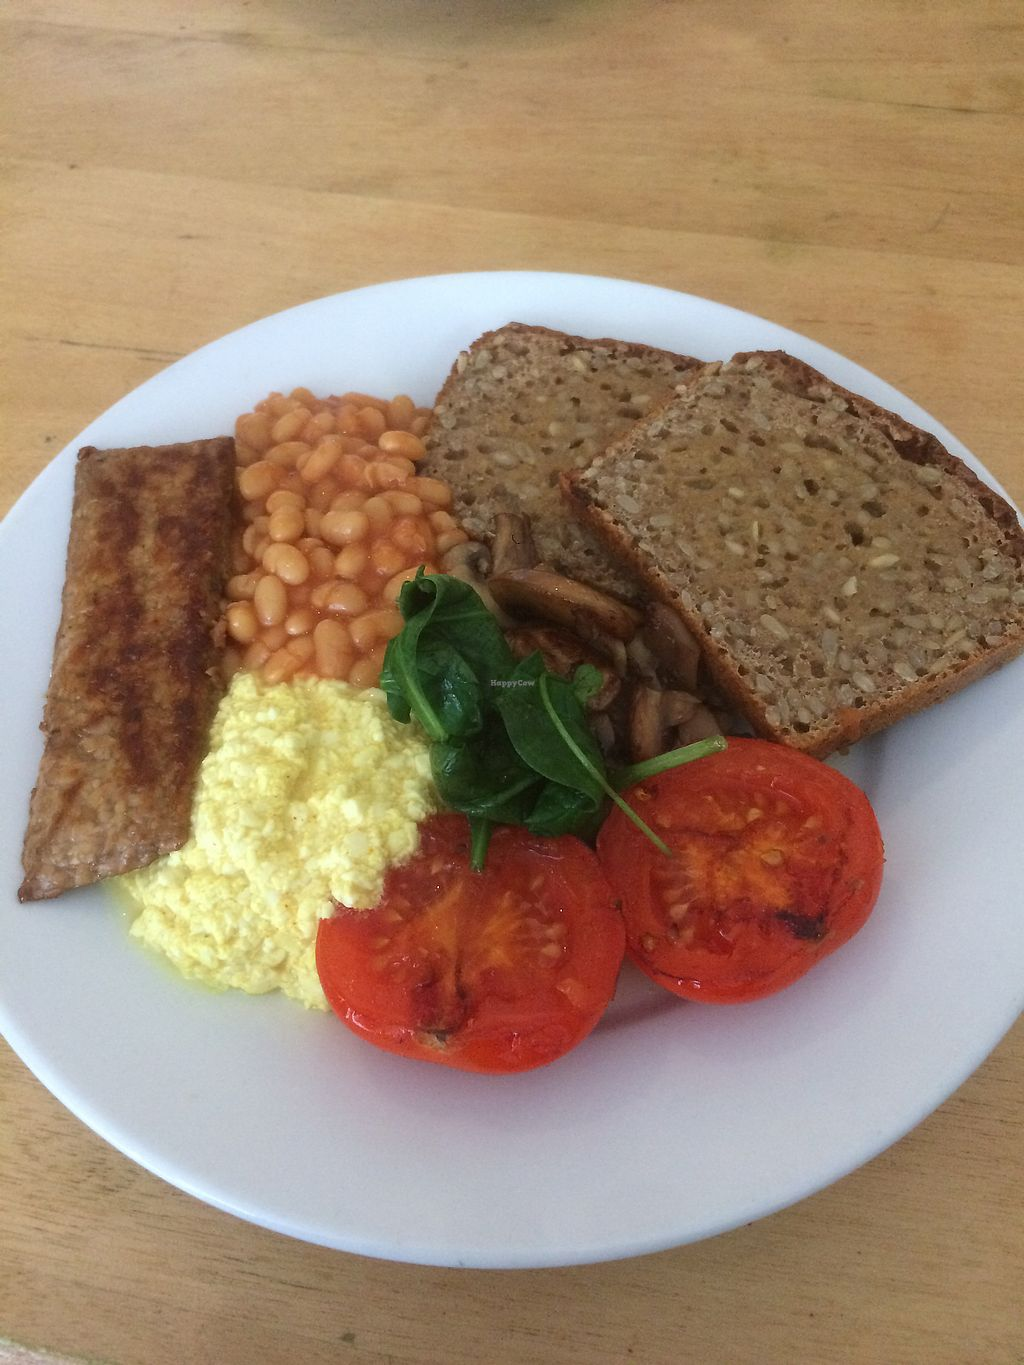 """Photo of Cafe Gratitude  by <a href=""""/members/profile/SophieRiches-Magnier"""">SophieRiches-Magnier</a> <br/>Full monty vegan breakfast <br/> December 22, 2017  - <a href='/contact/abuse/image/77075/338069'>Report</a>"""